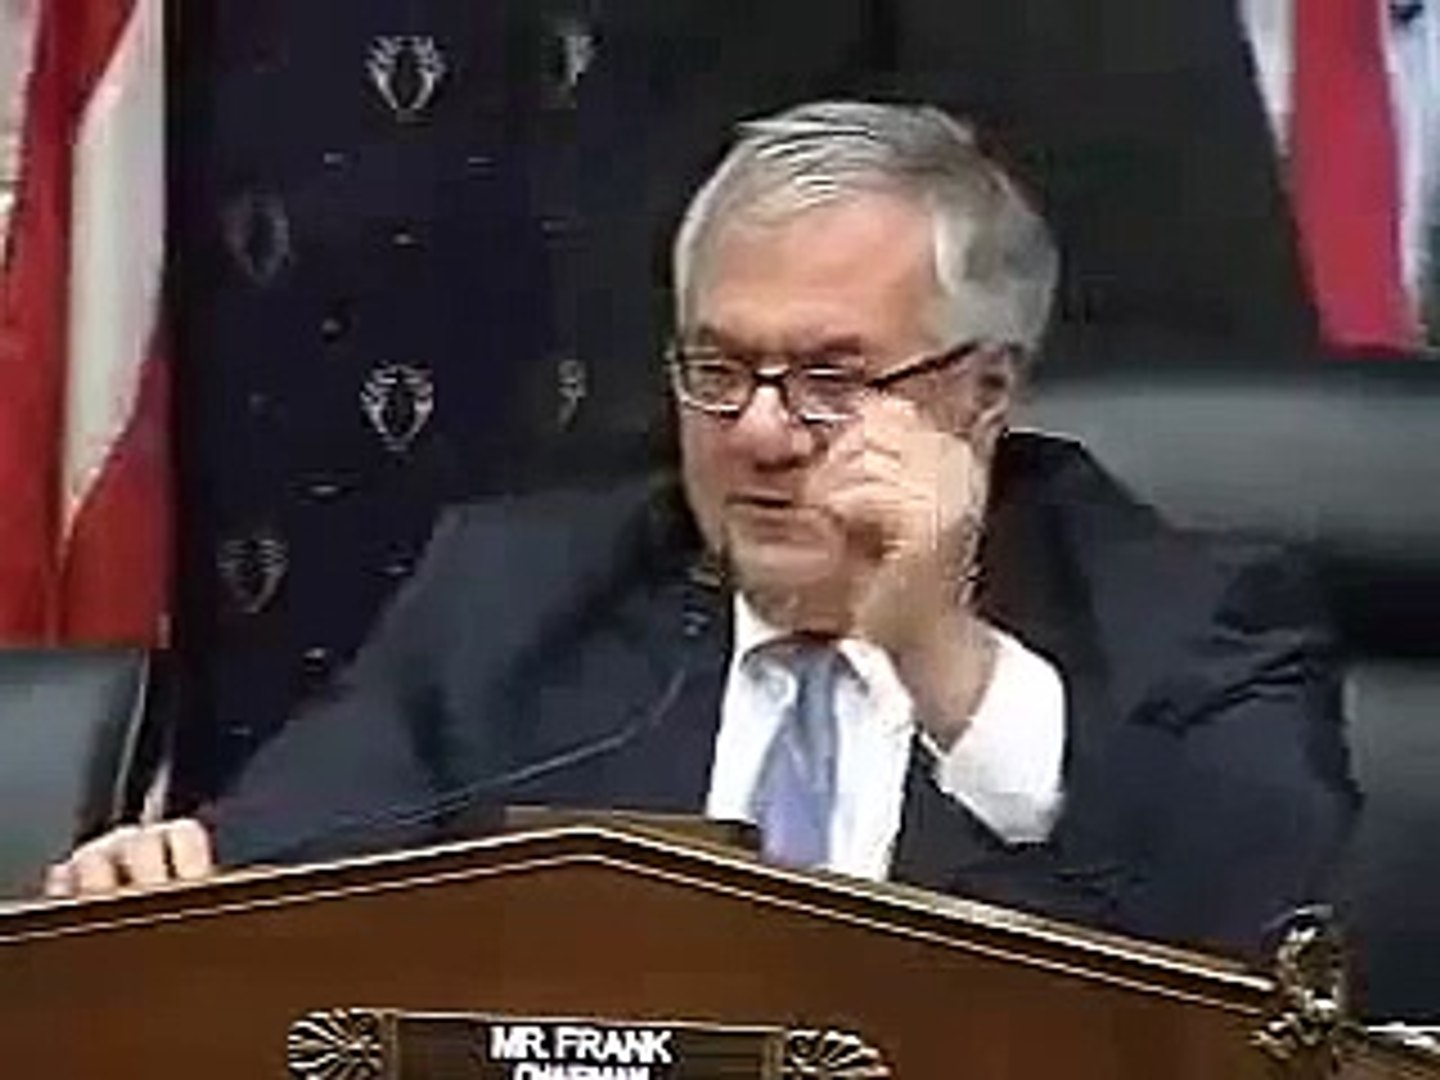 Barney Frank: Here's The Point